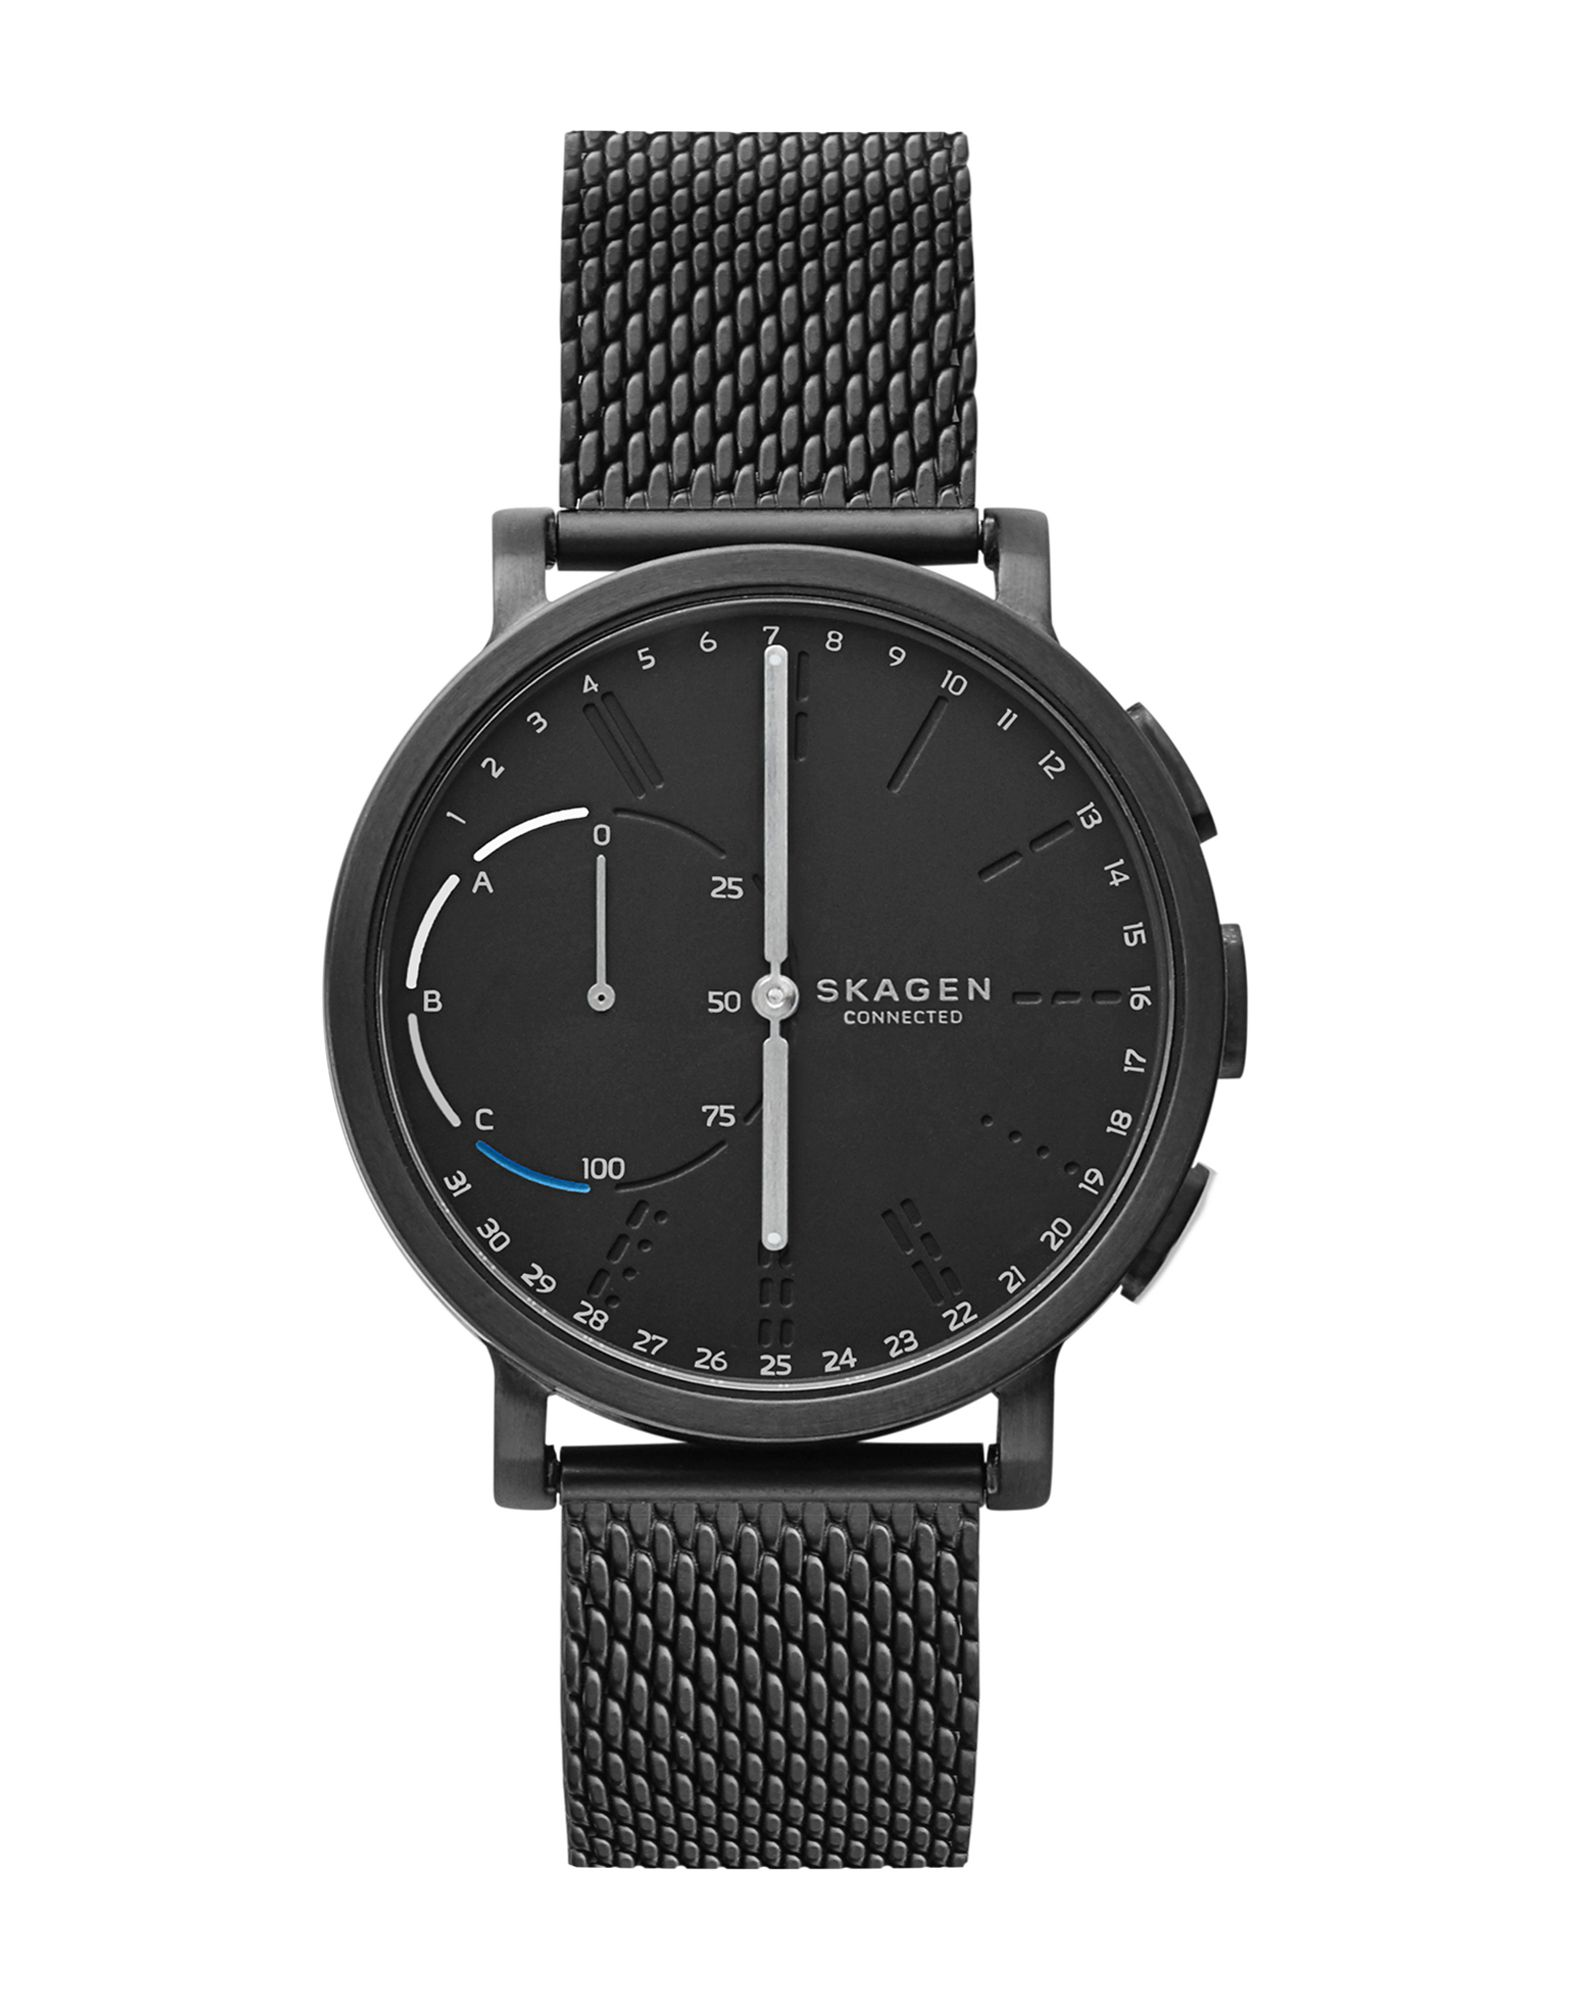 sponsored you taboola hybrid links on like hopes one of watches smartwatches by misfit hagen fossil skagen ll hands ed its